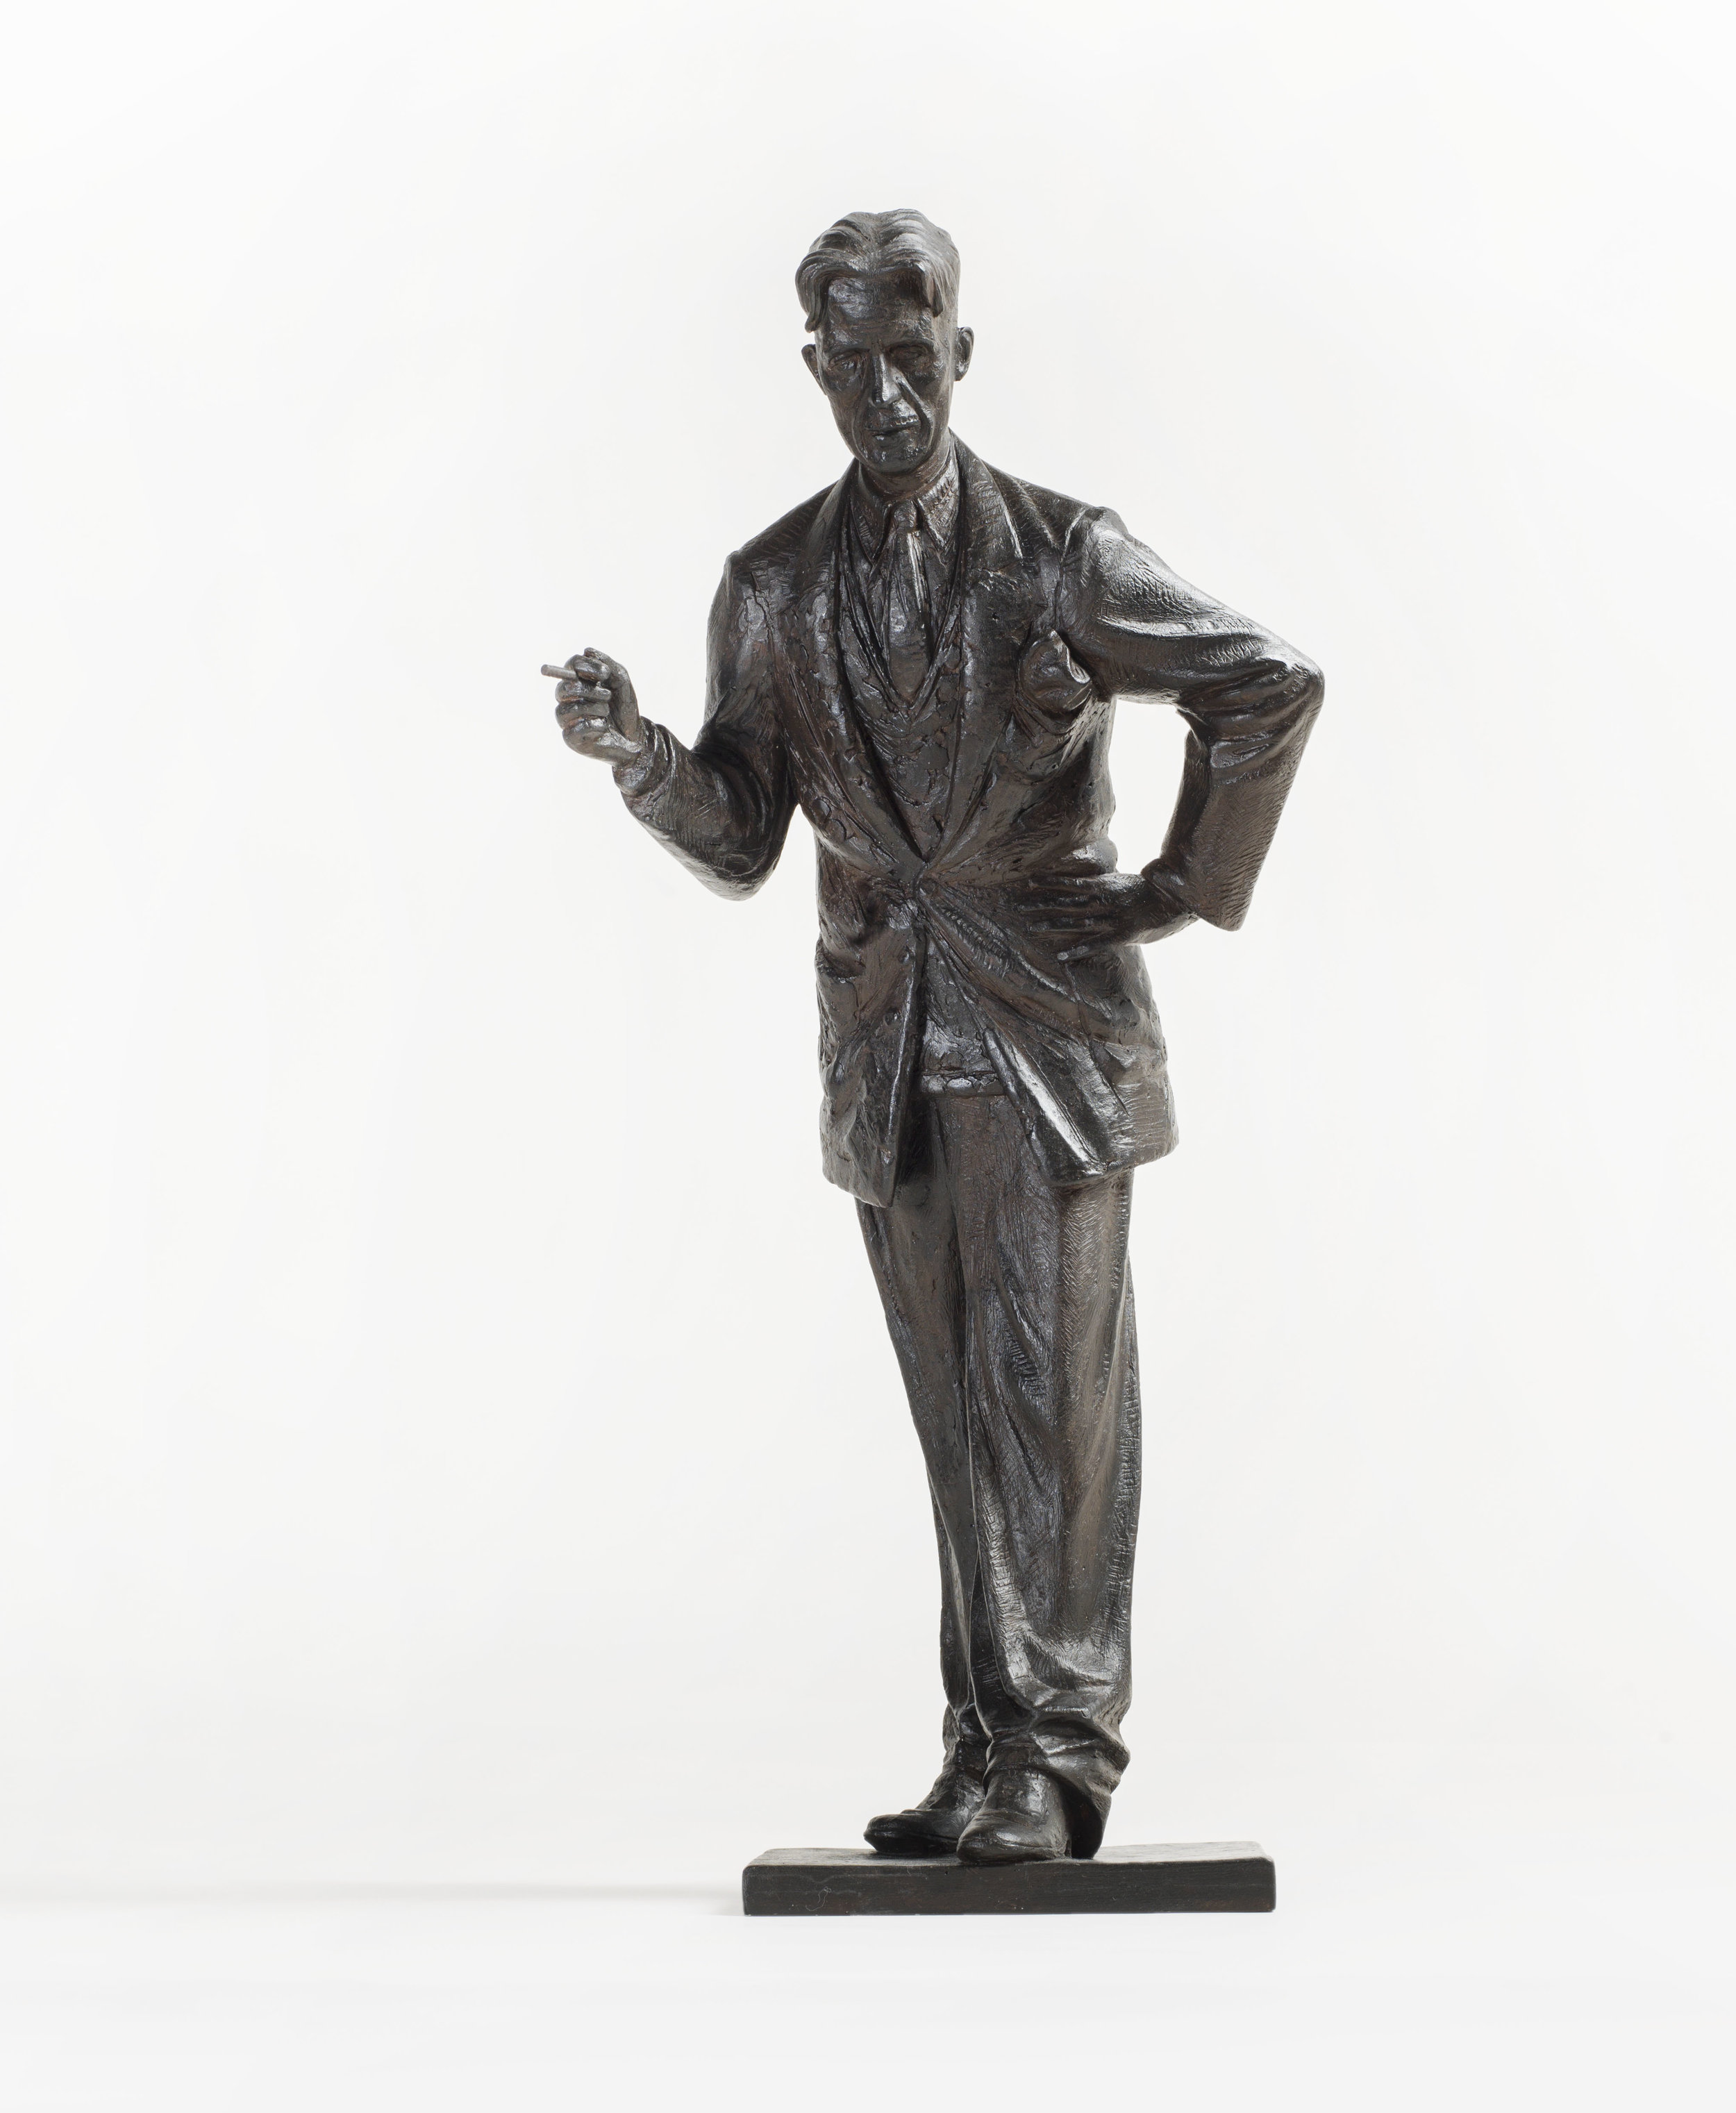 42. George Orwell maquette.